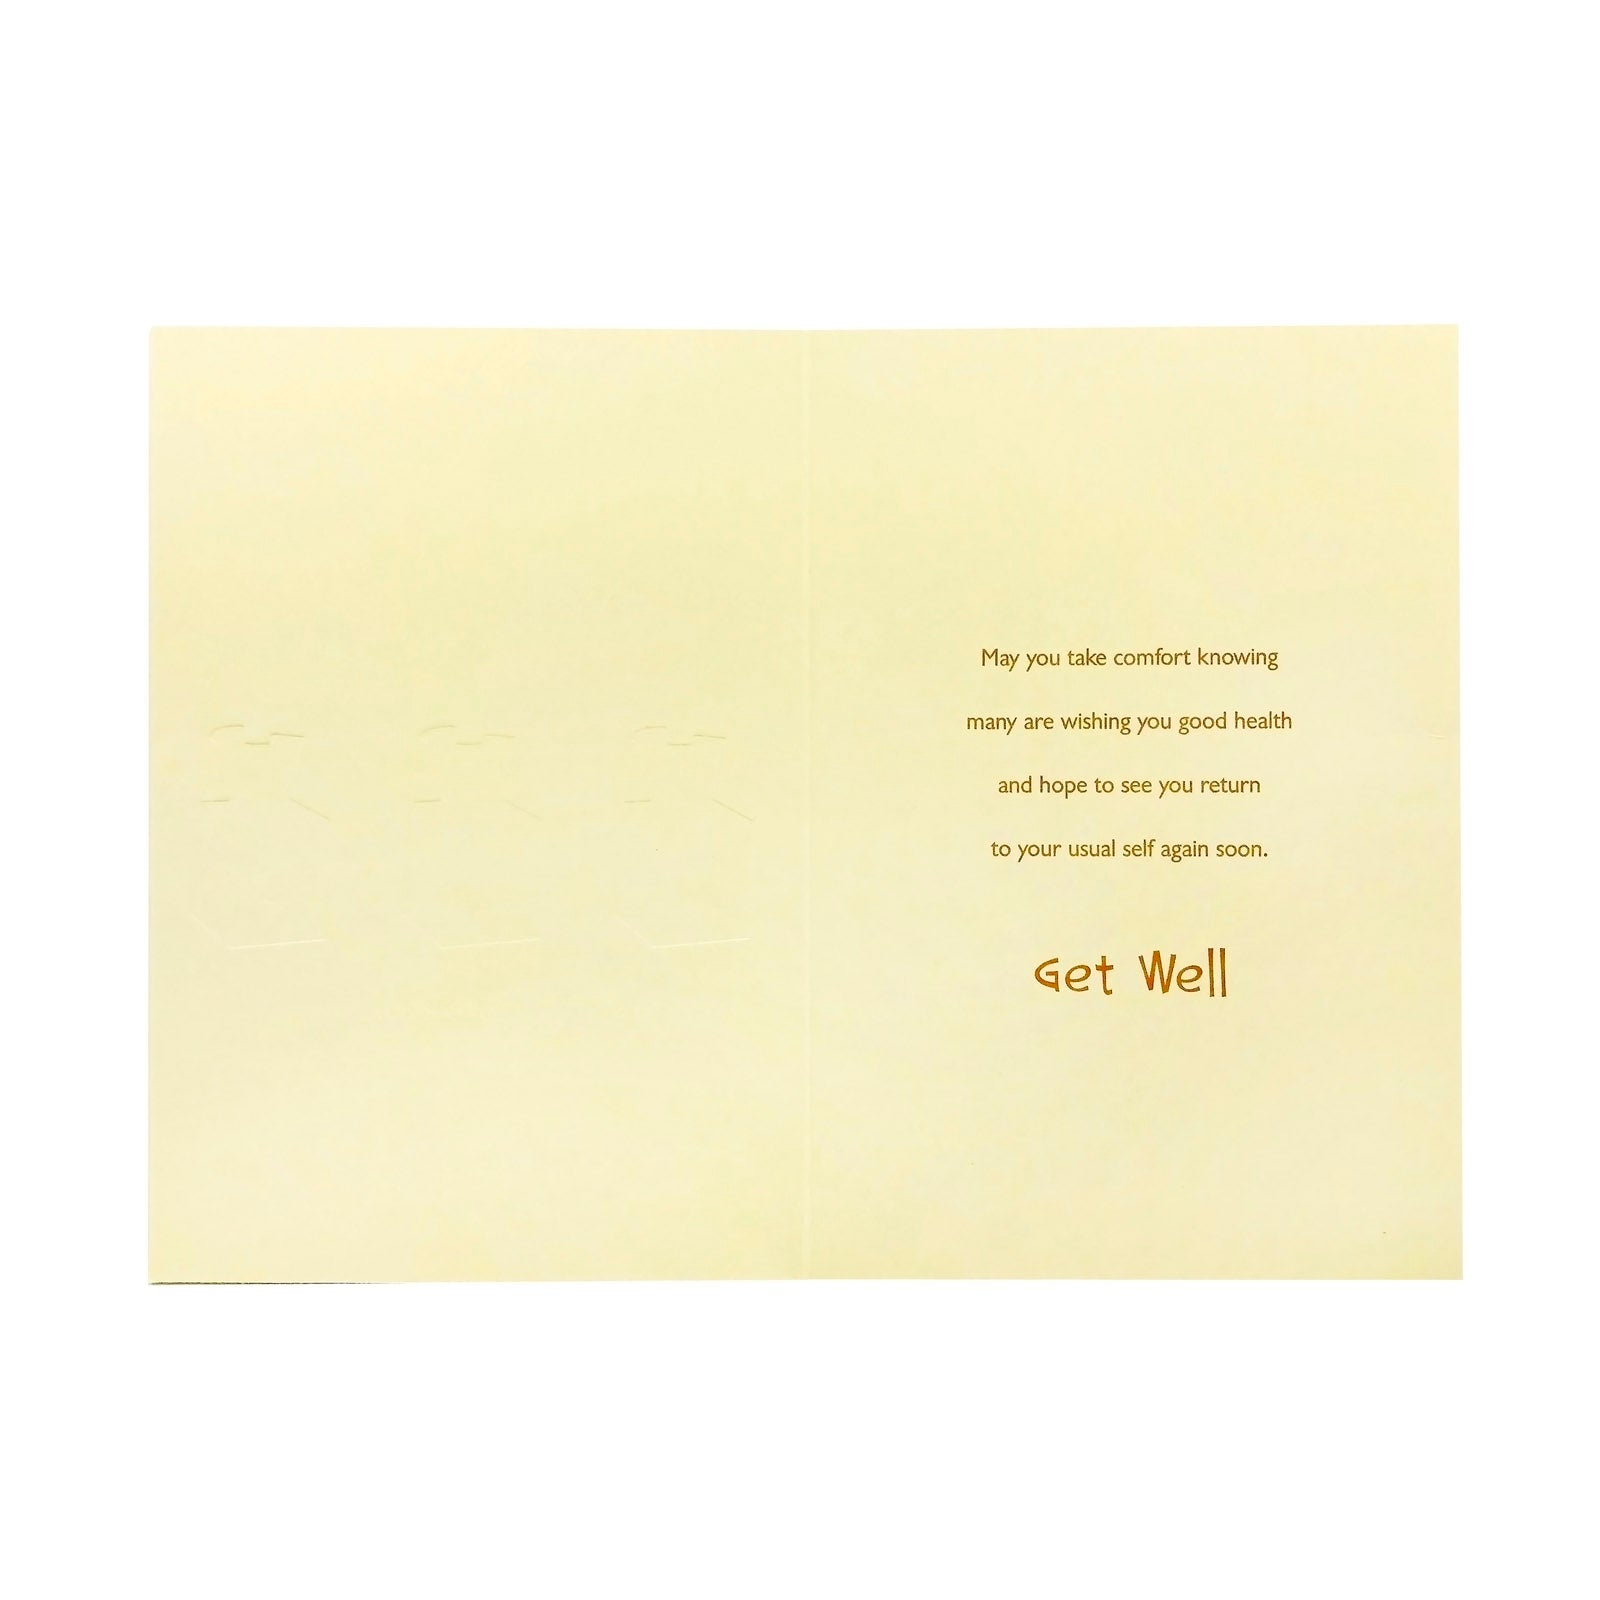 Designer Greetings Get Well Card - Feeling Better Already - Tissues